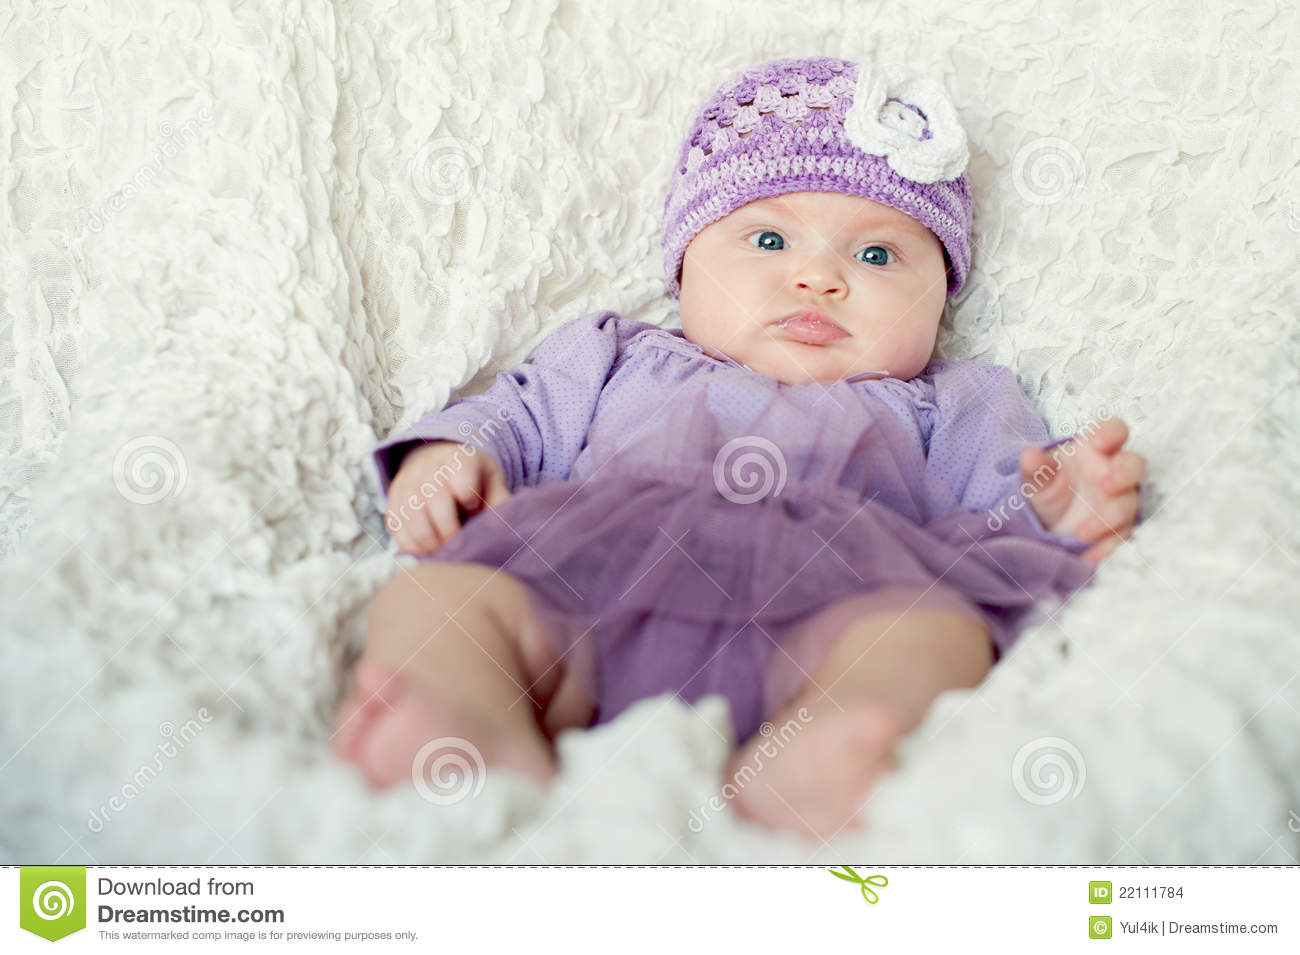 Baby Girl With Knitted Hat With Flower Stock Photo - Image of girl ... 217c90b1d